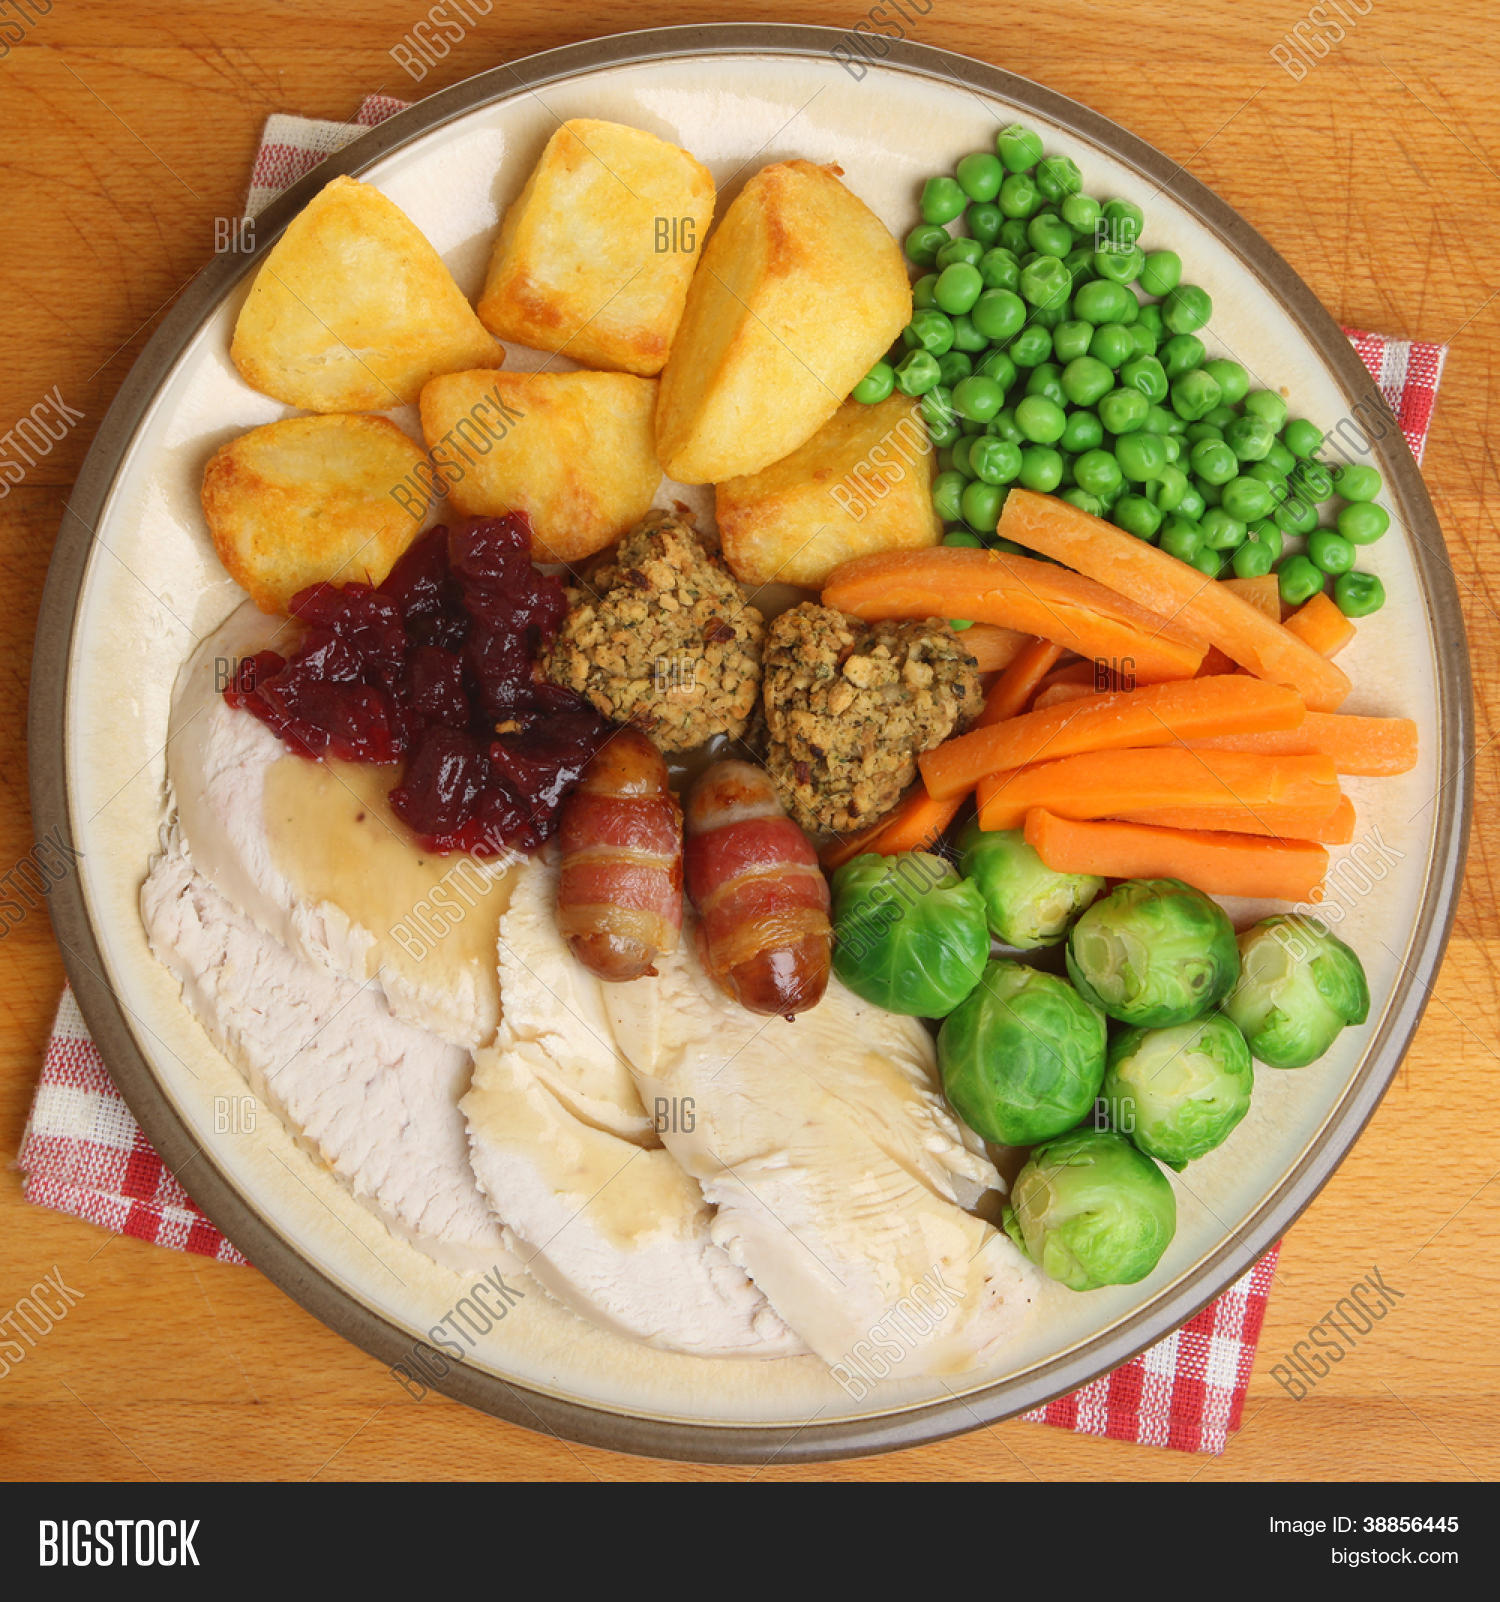 Traditional English Christmas Dinner.Roast Turkey Christmas Image Photo Free Trial Bigstock